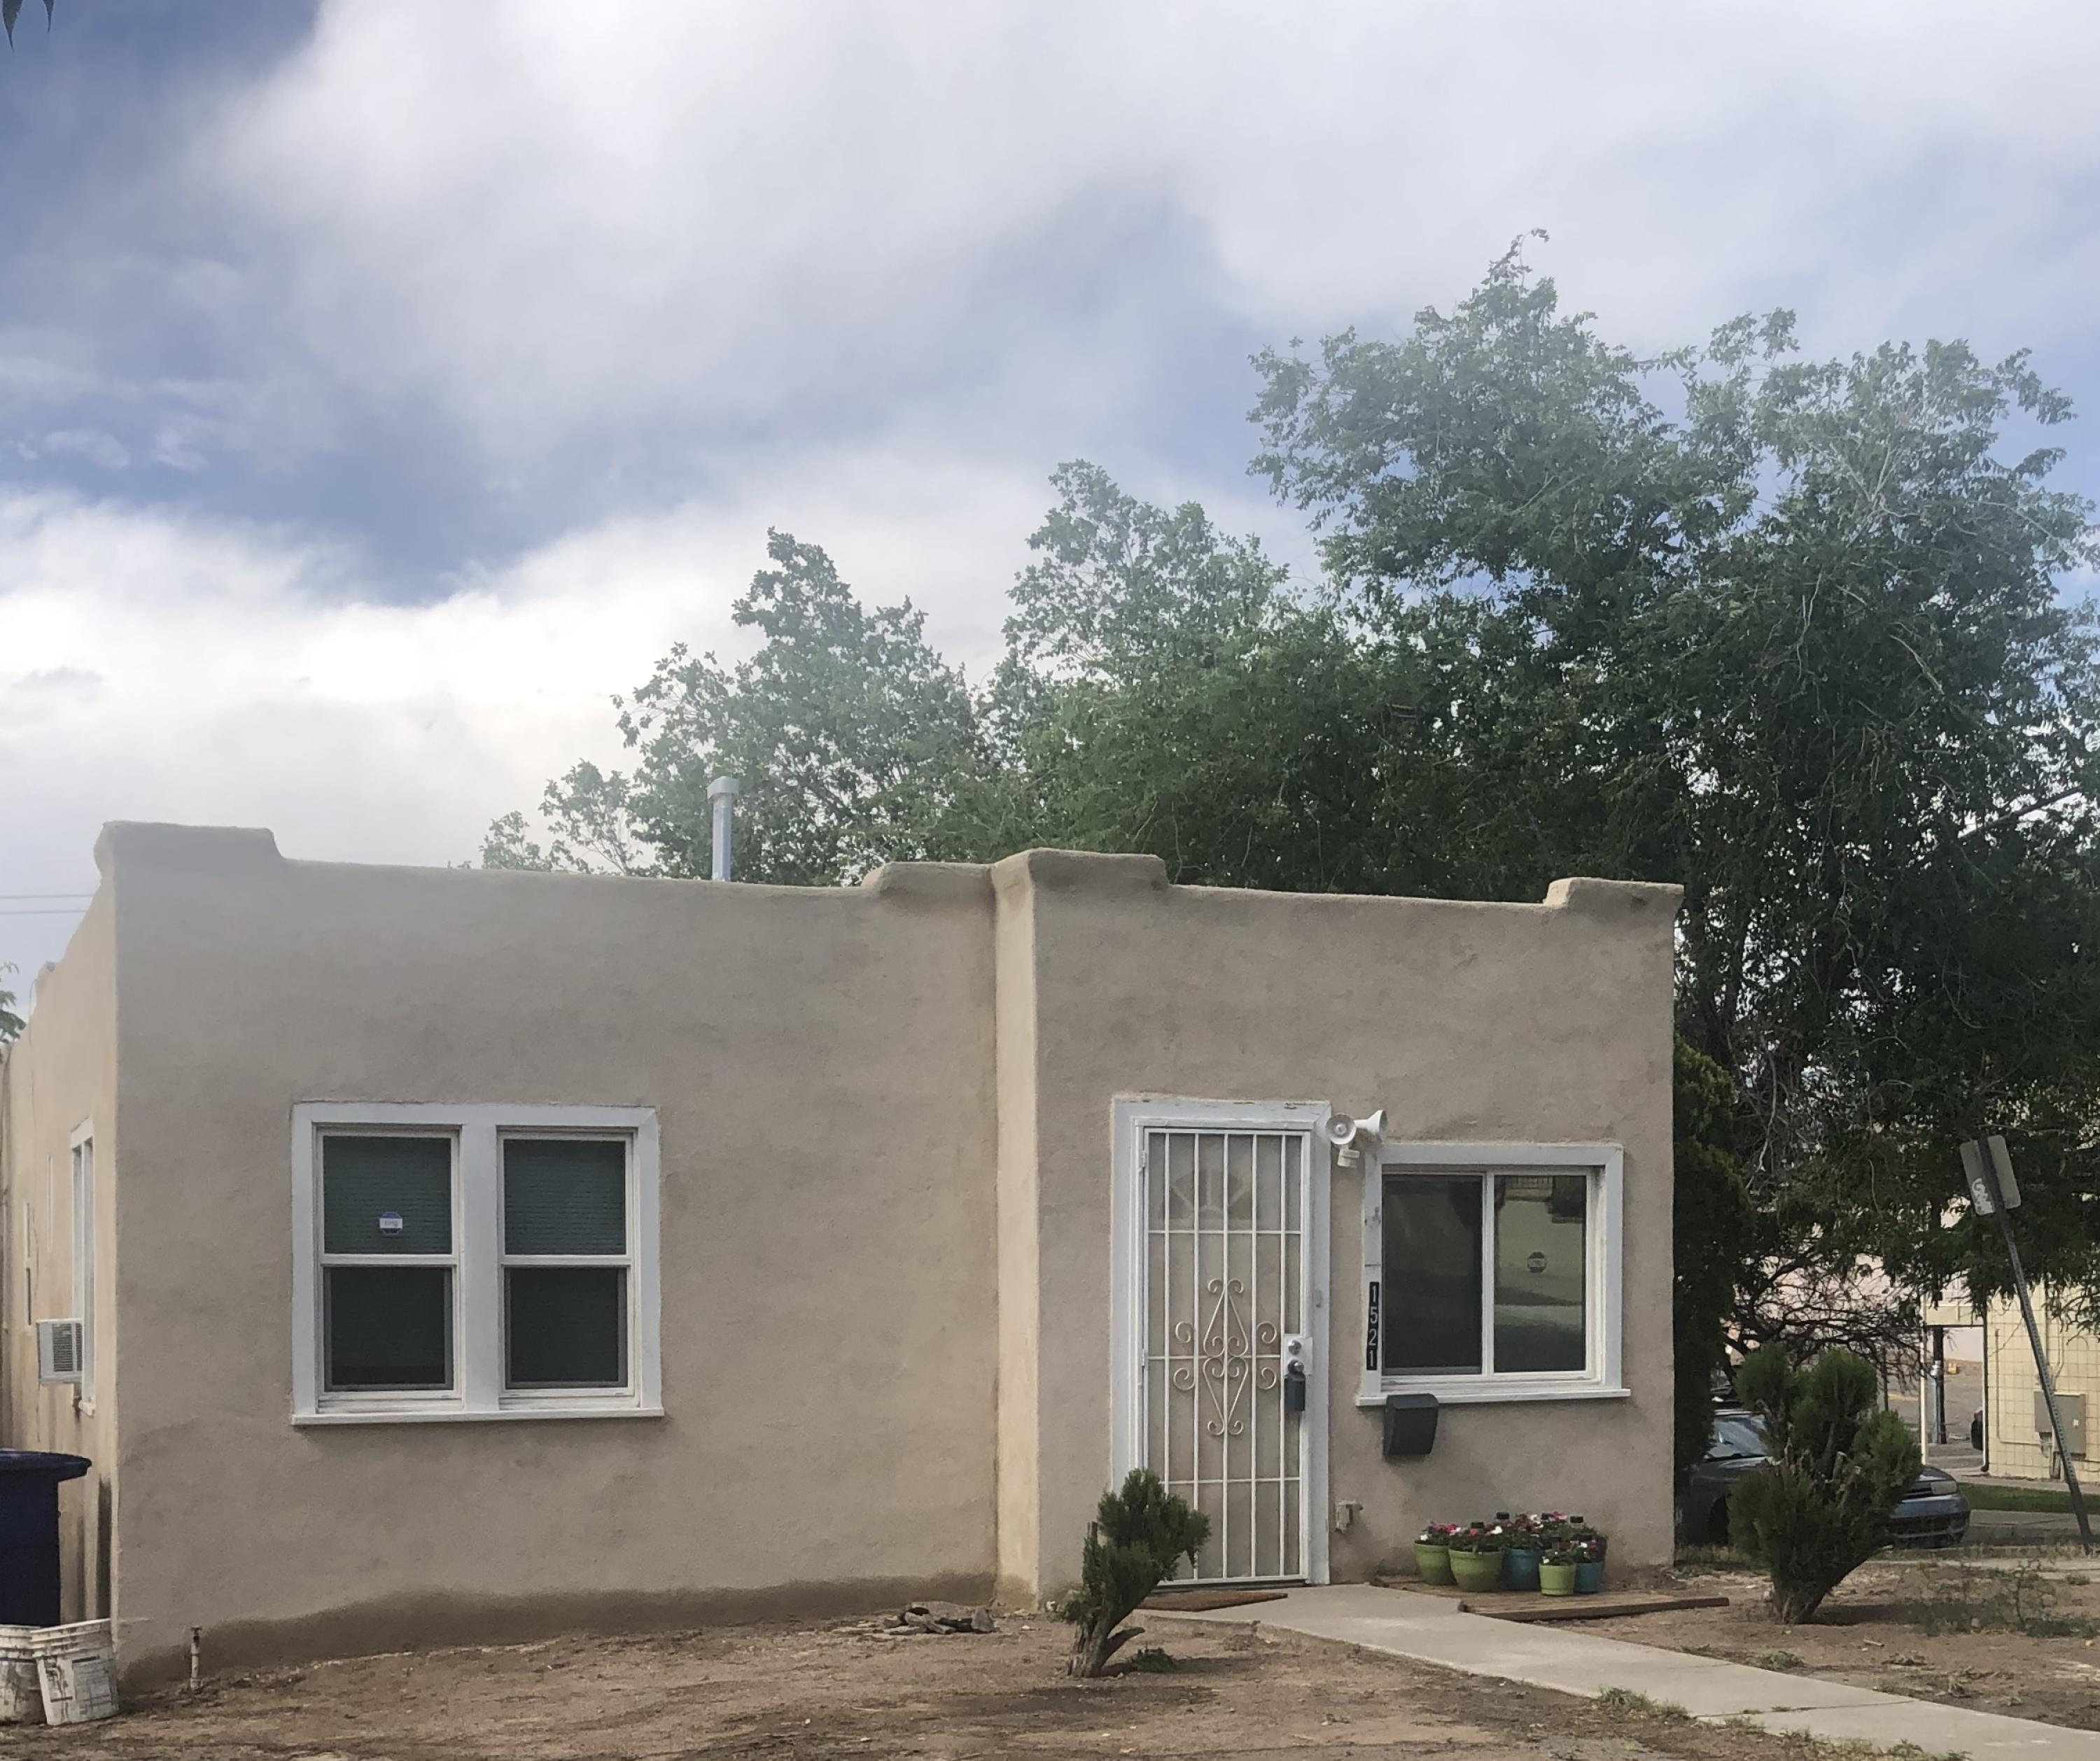 1521 GOLD Avenue SE Property Photo - Albuquerque, NM real estate listing